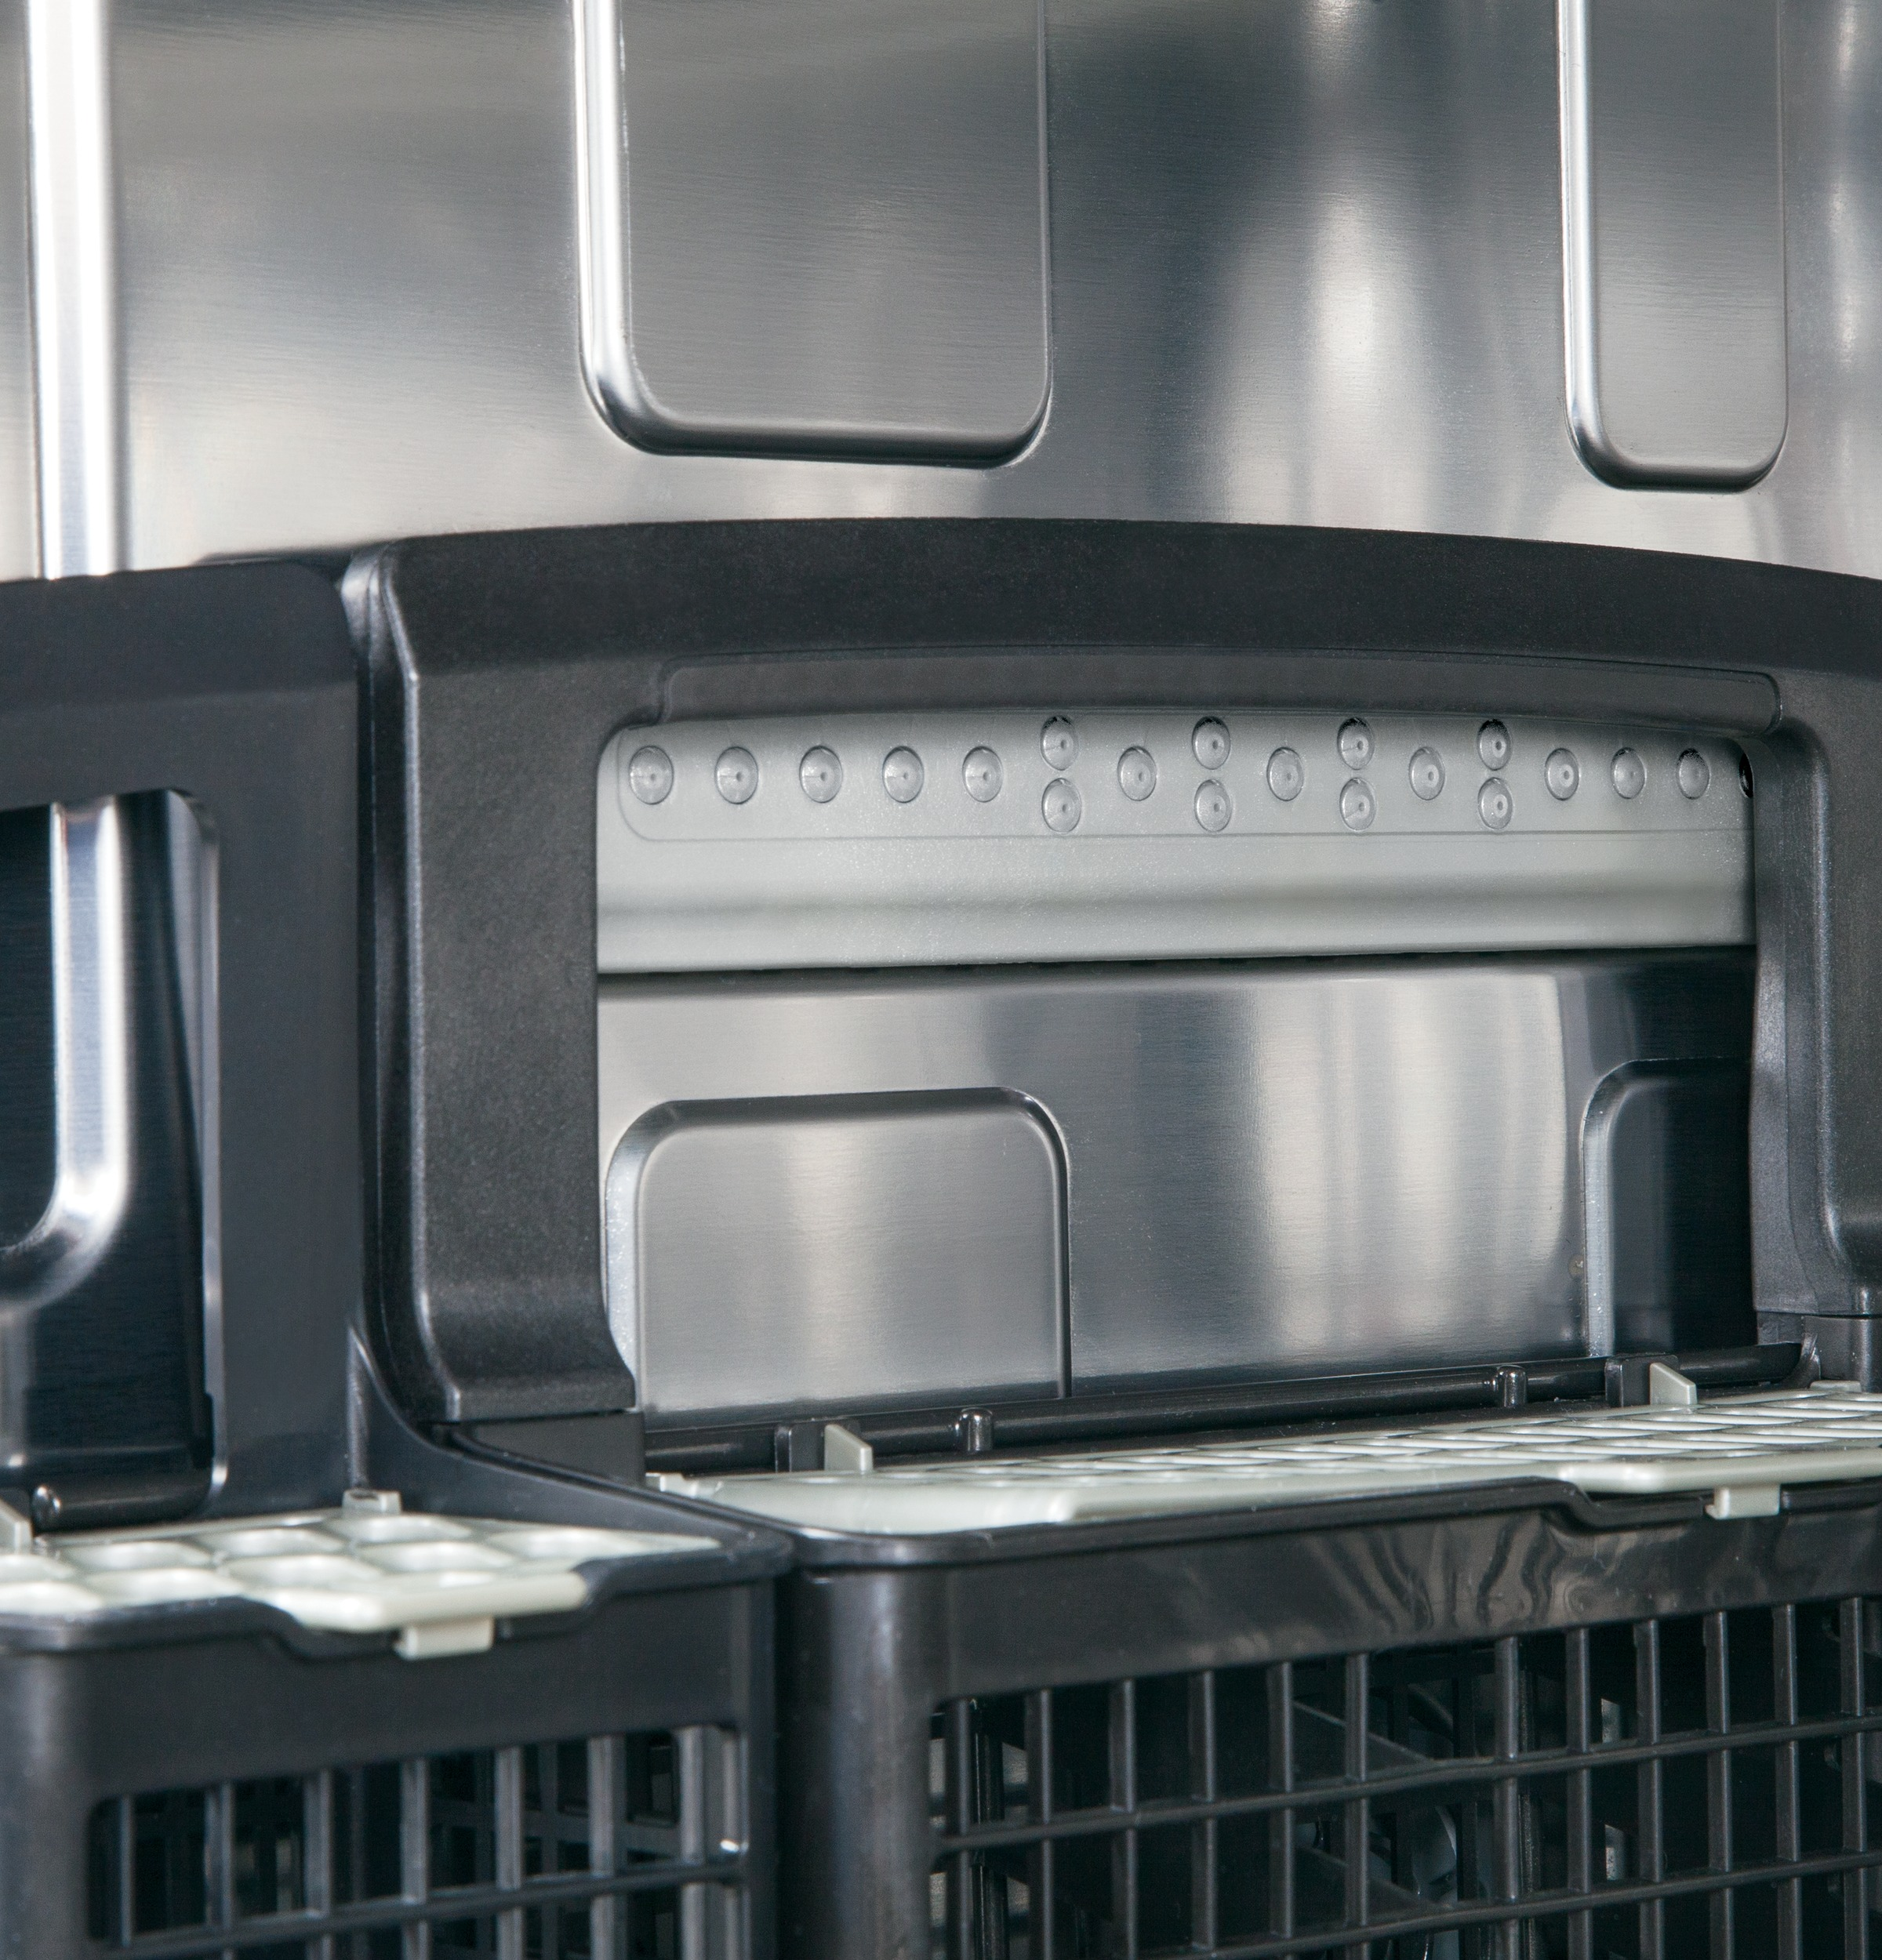 Model: PDT855SIJII | GE Profile GE Profile™ Stainless Steel Interior Dishwasher with Hidden Controls